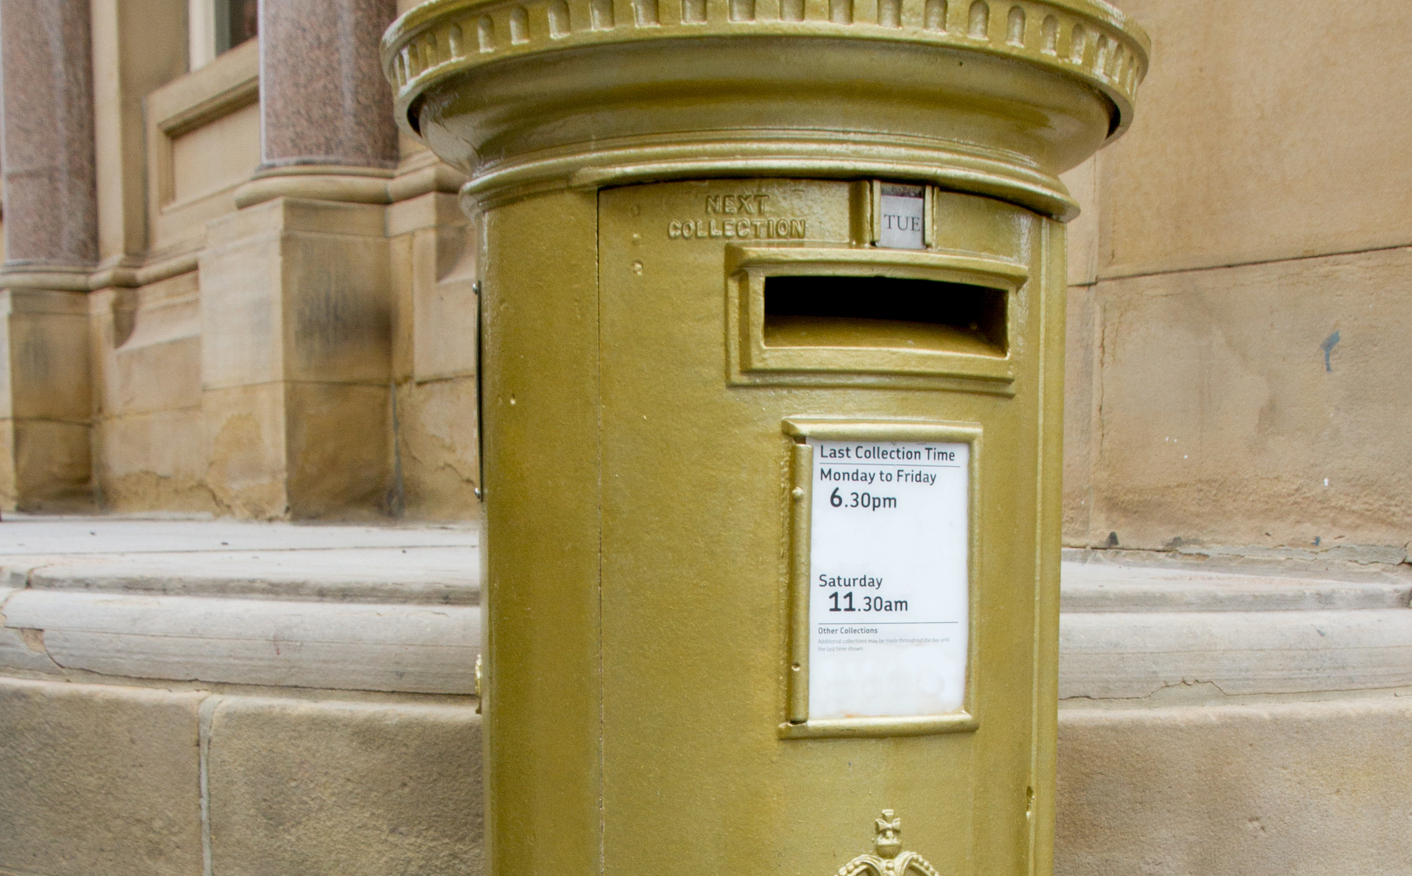 Gold post boxes appeared in winners' hometowns after London 2012